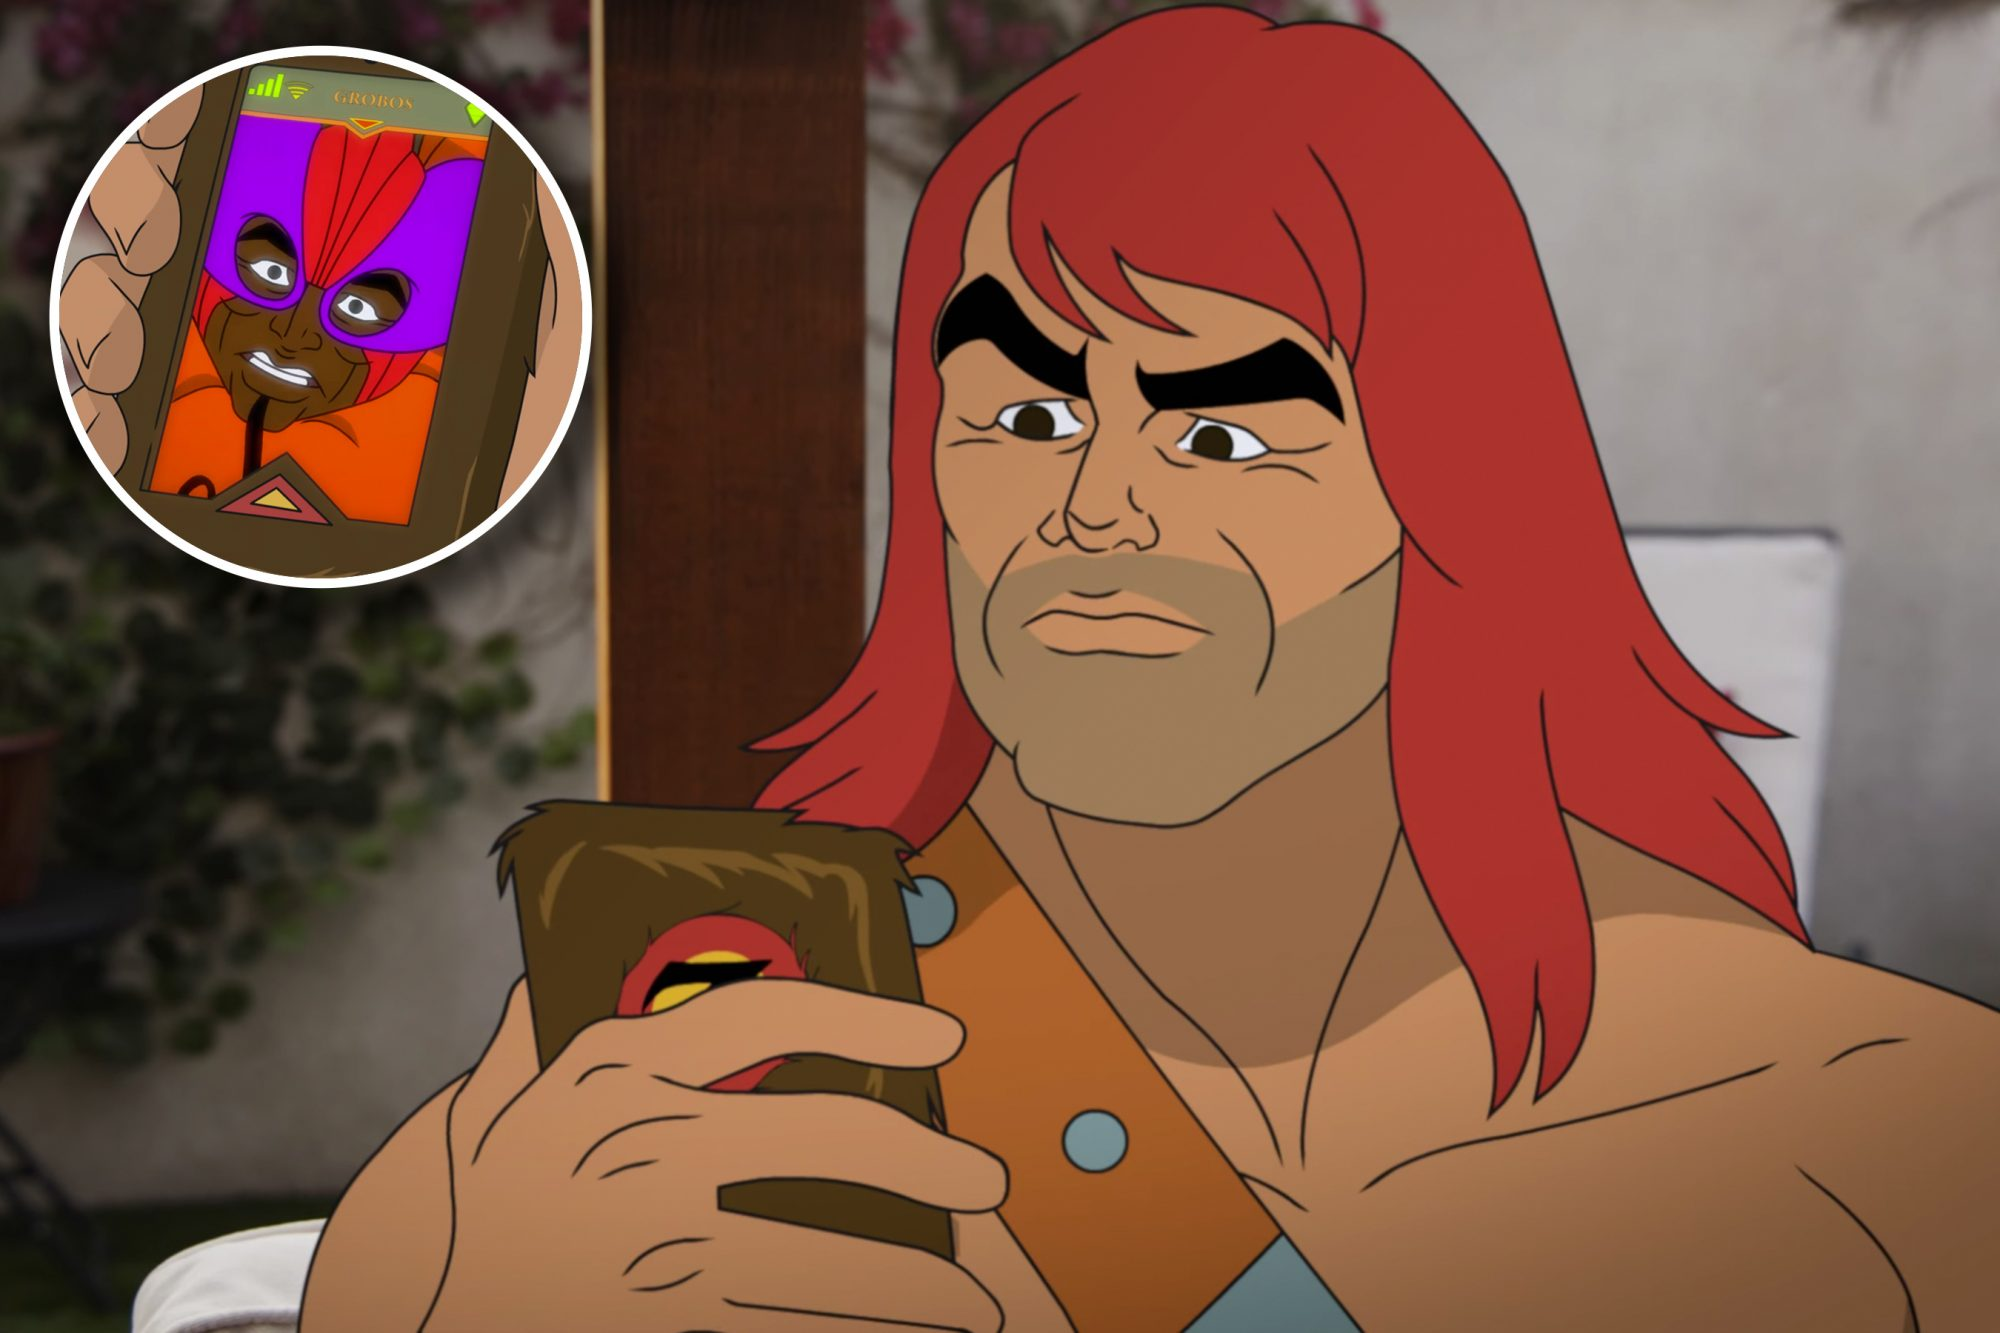 Keegan michael key in Son of Zorn